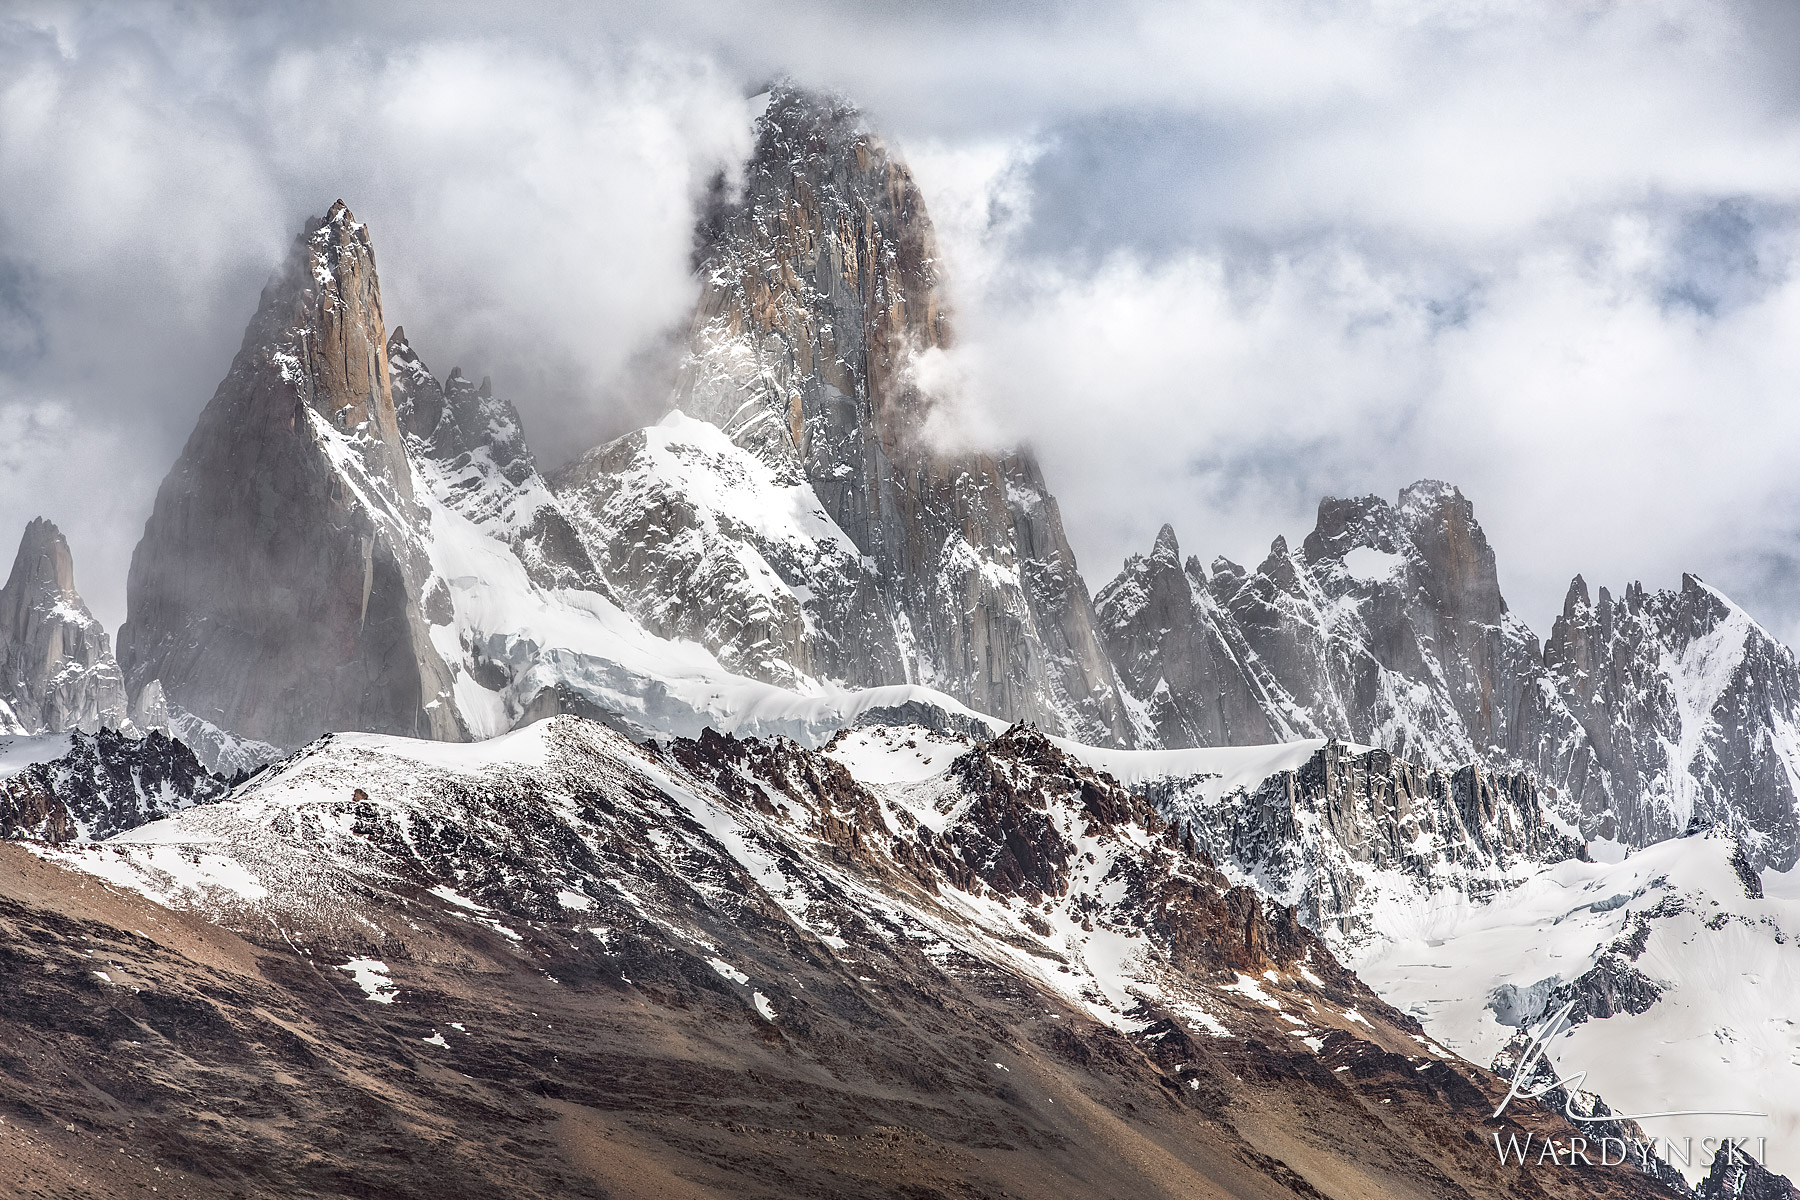 Fine Art Print | Limited Edition of 100   Mount Fitz Roy rises up into the clouds like an opulent castle covered in snow. This...